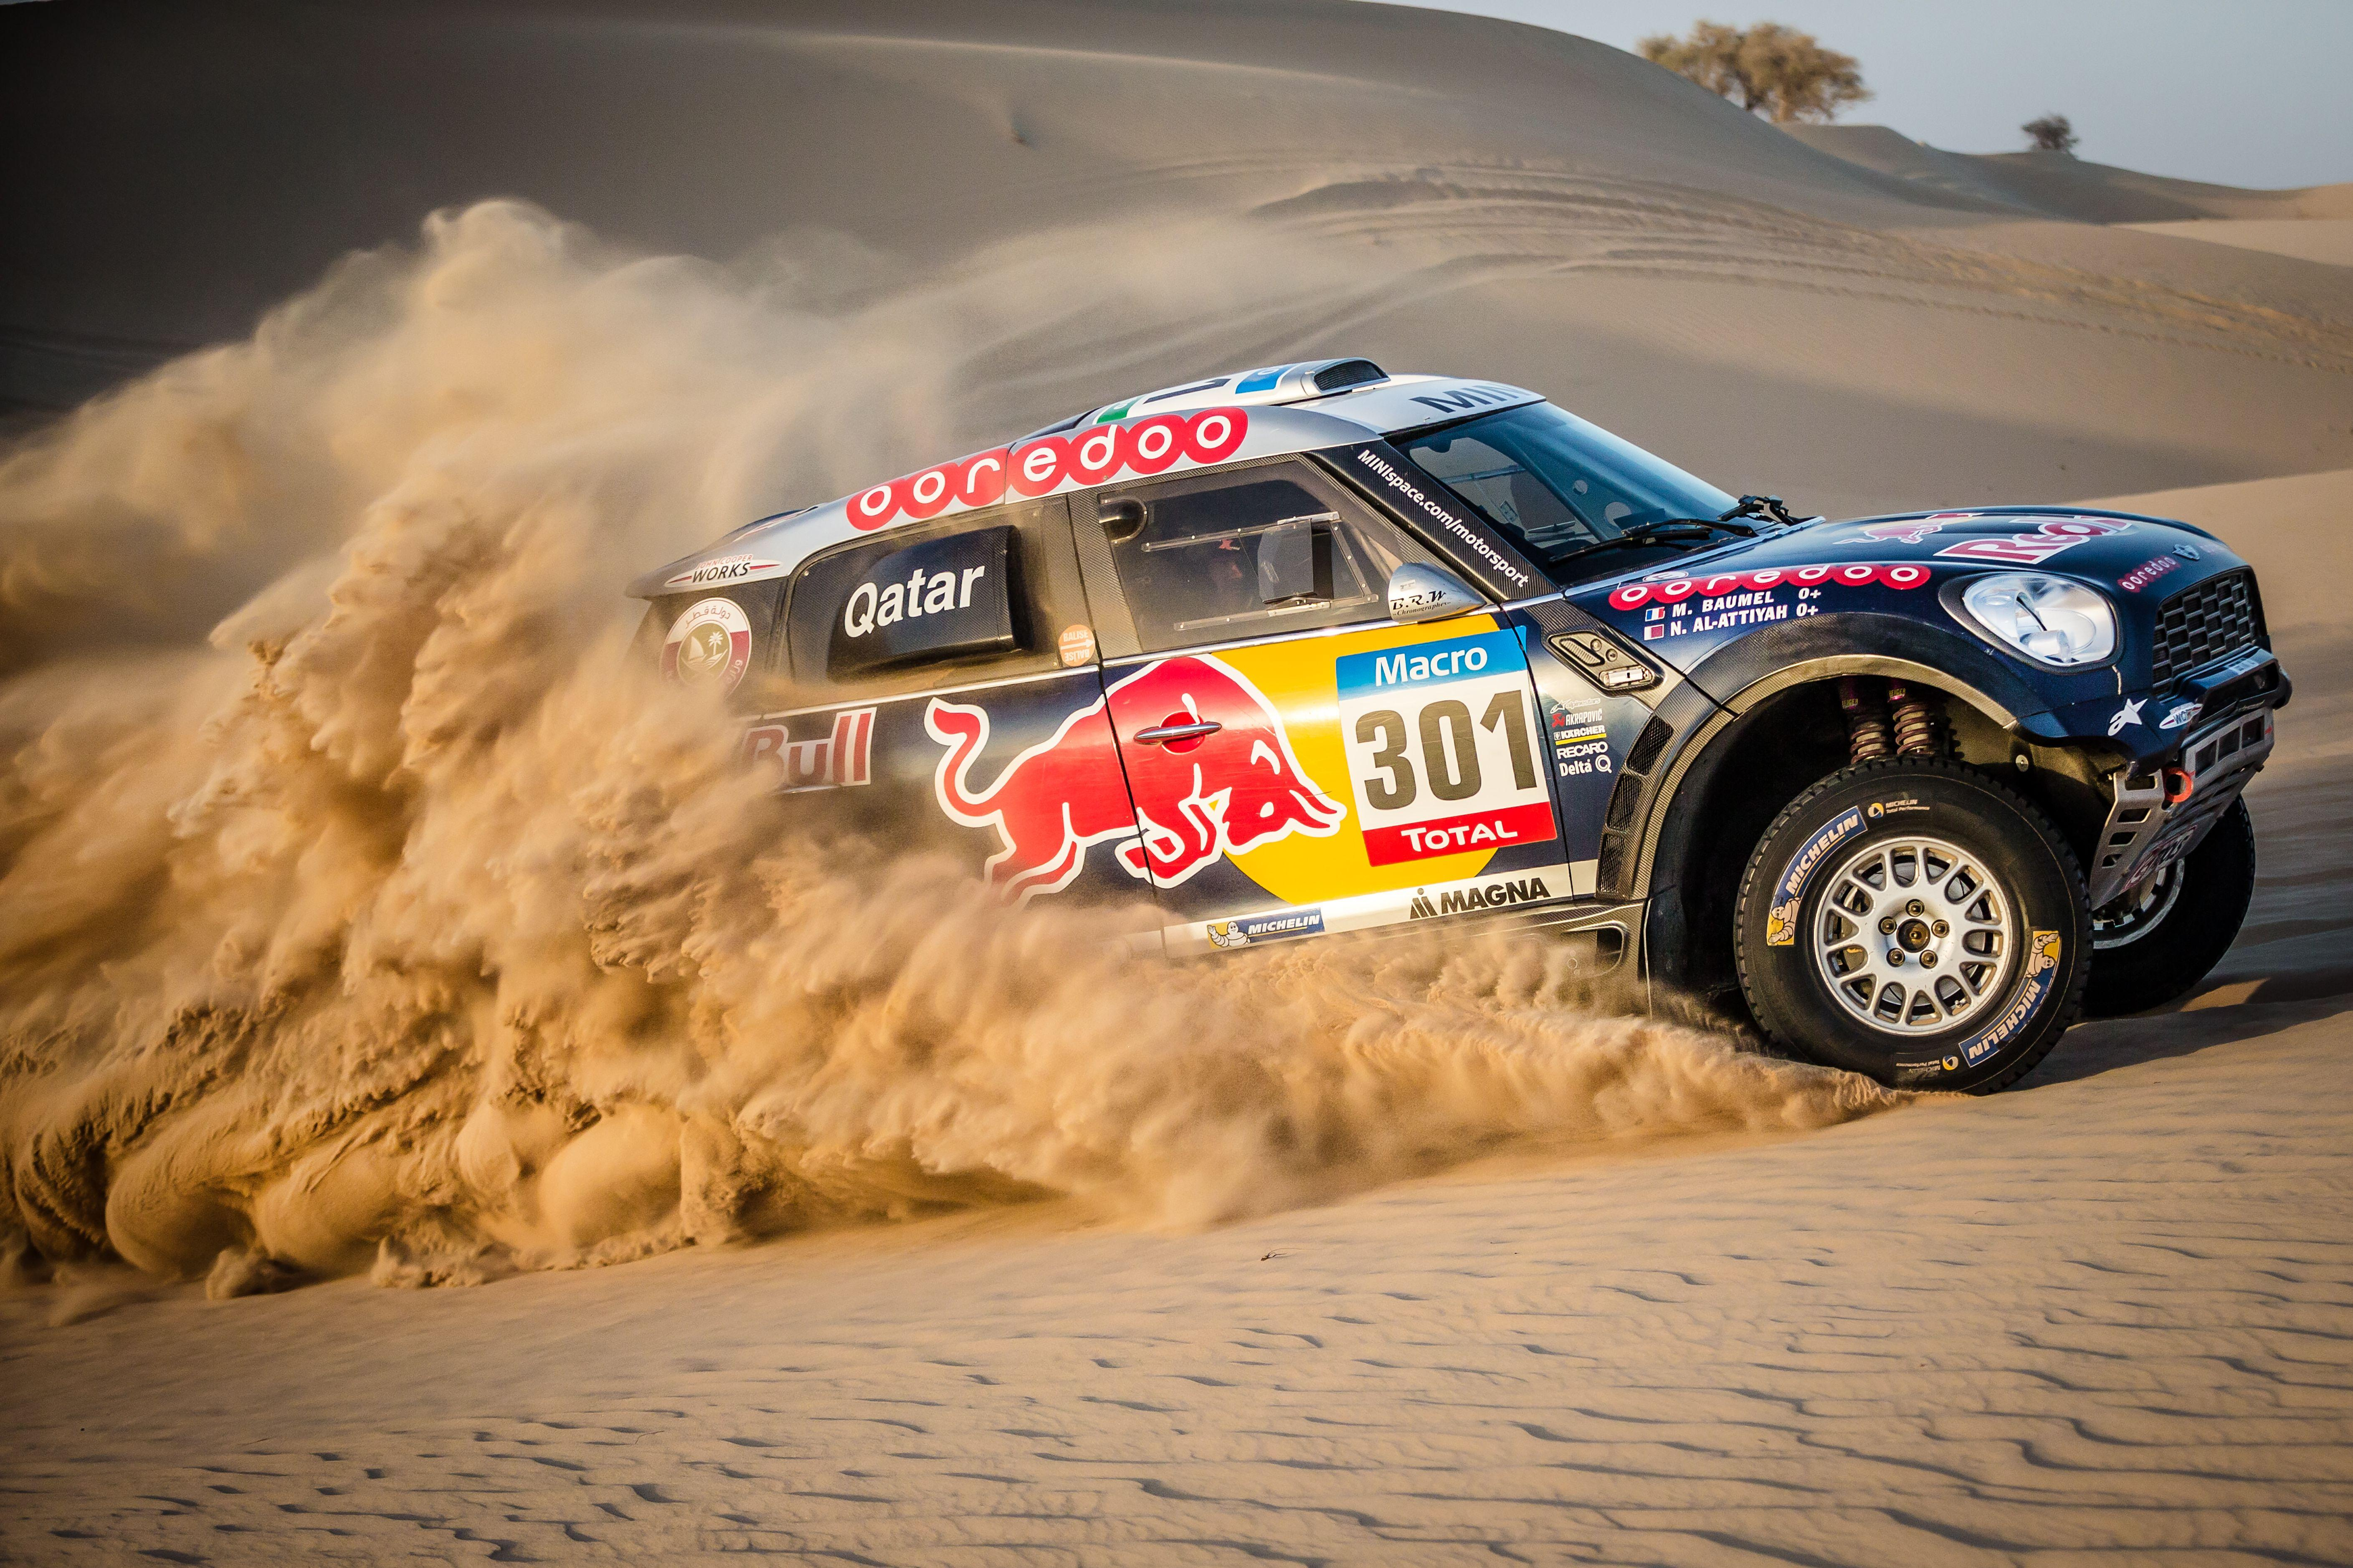 Dakar Wallpapers High Quality | Download Free